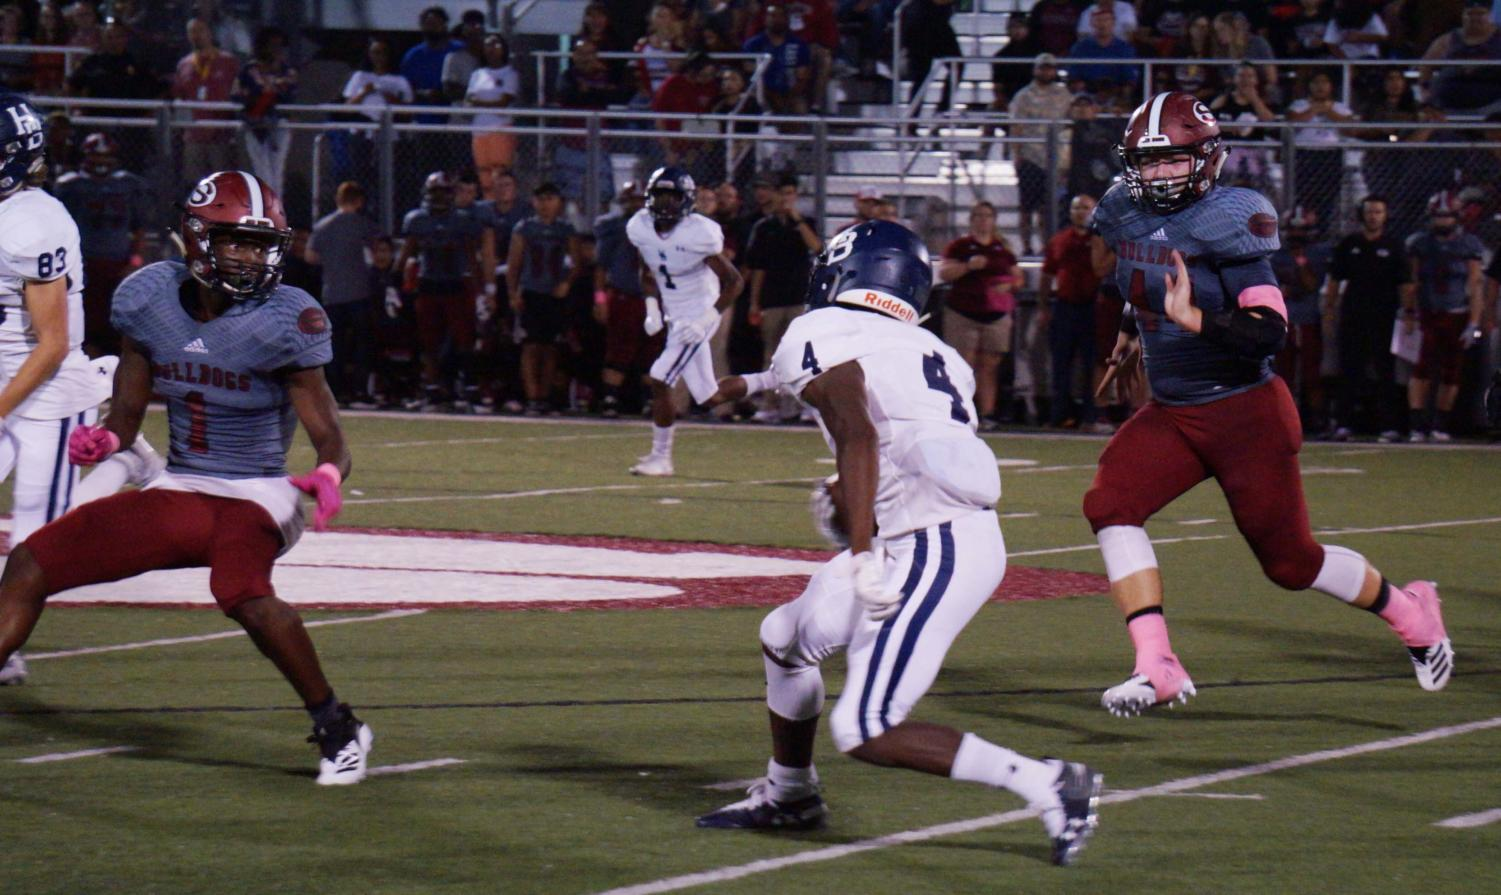 Junior running back Jay Burns rushed for 317 yards against the Springdale Bulldogs Oct. 5 in a conference match-up. The Bulldogs defeated the Wildcats 43-42.